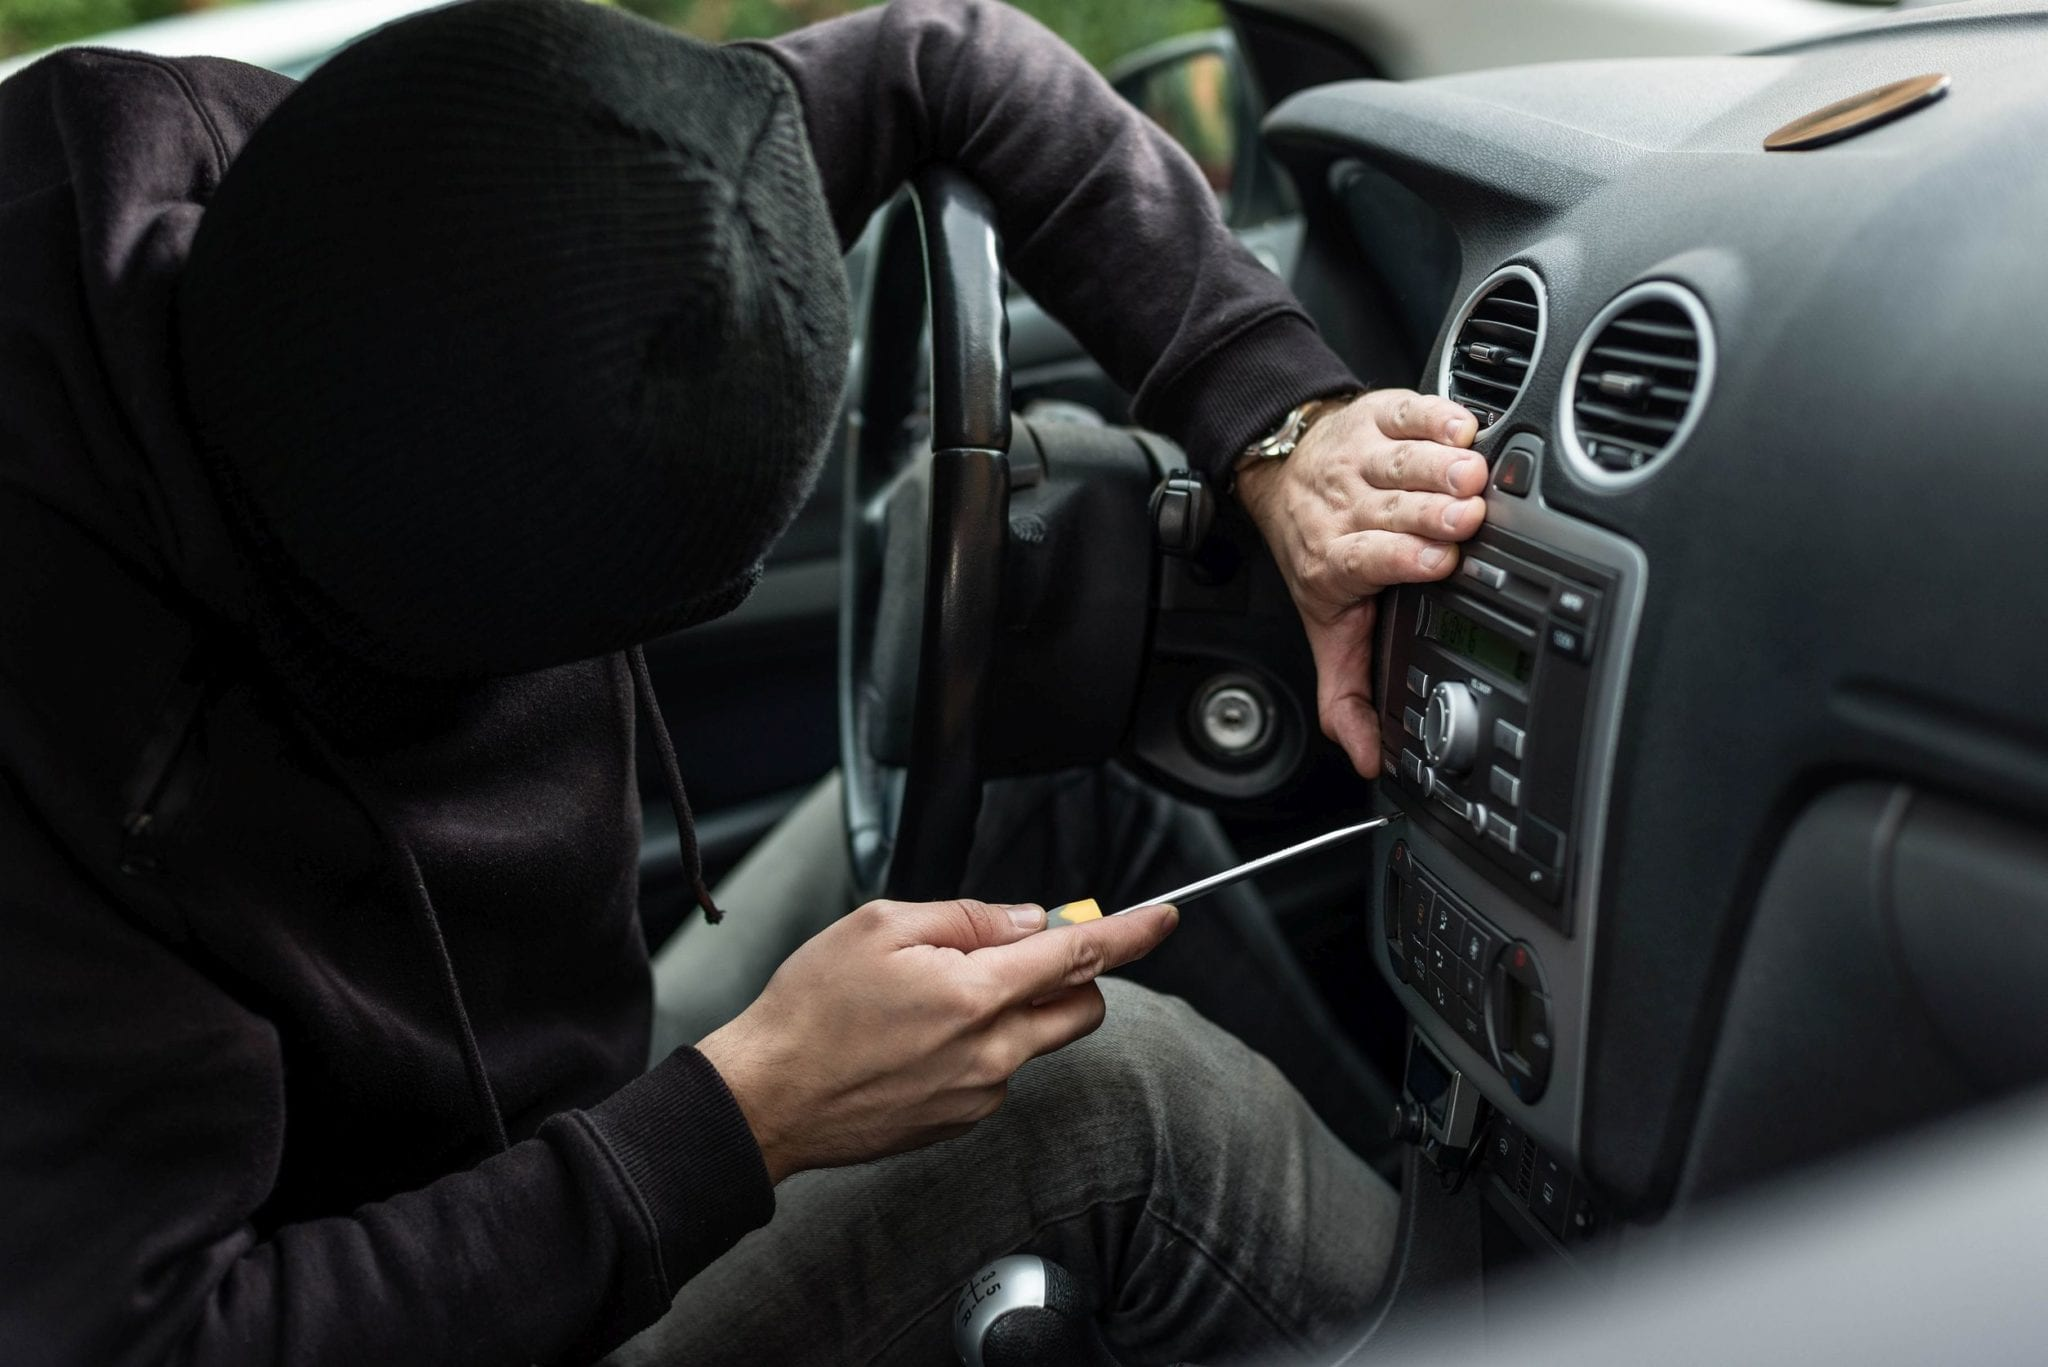 Texas Auto Theft Charges: What You Need to Know